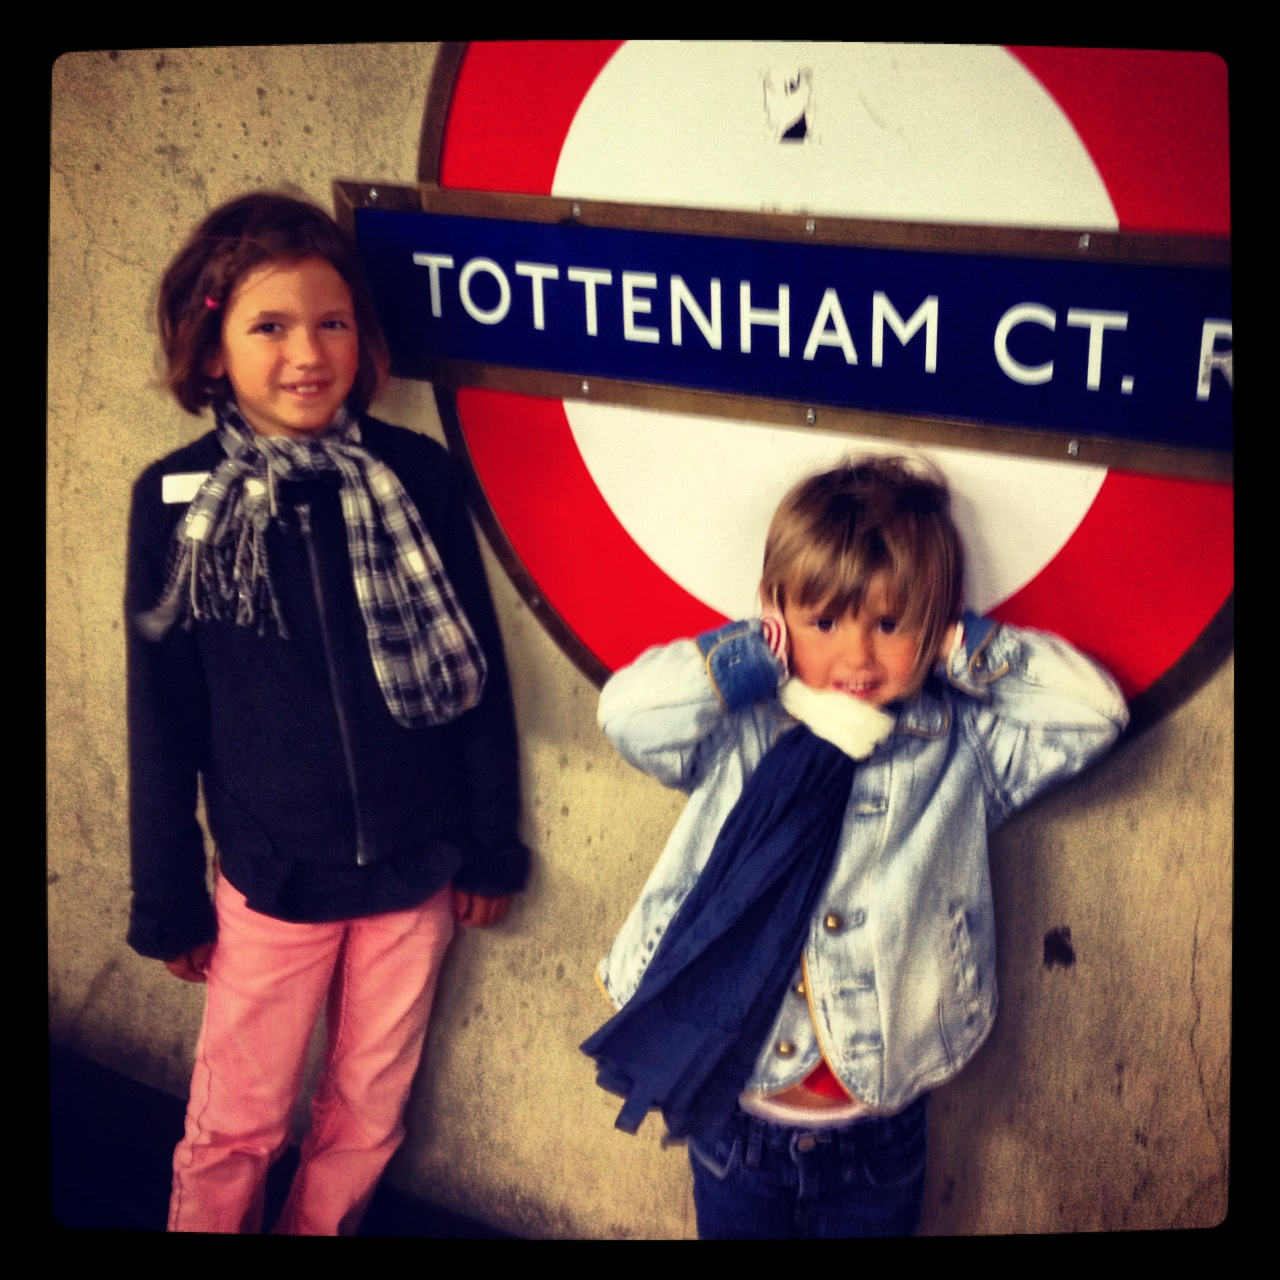 London transport with kids